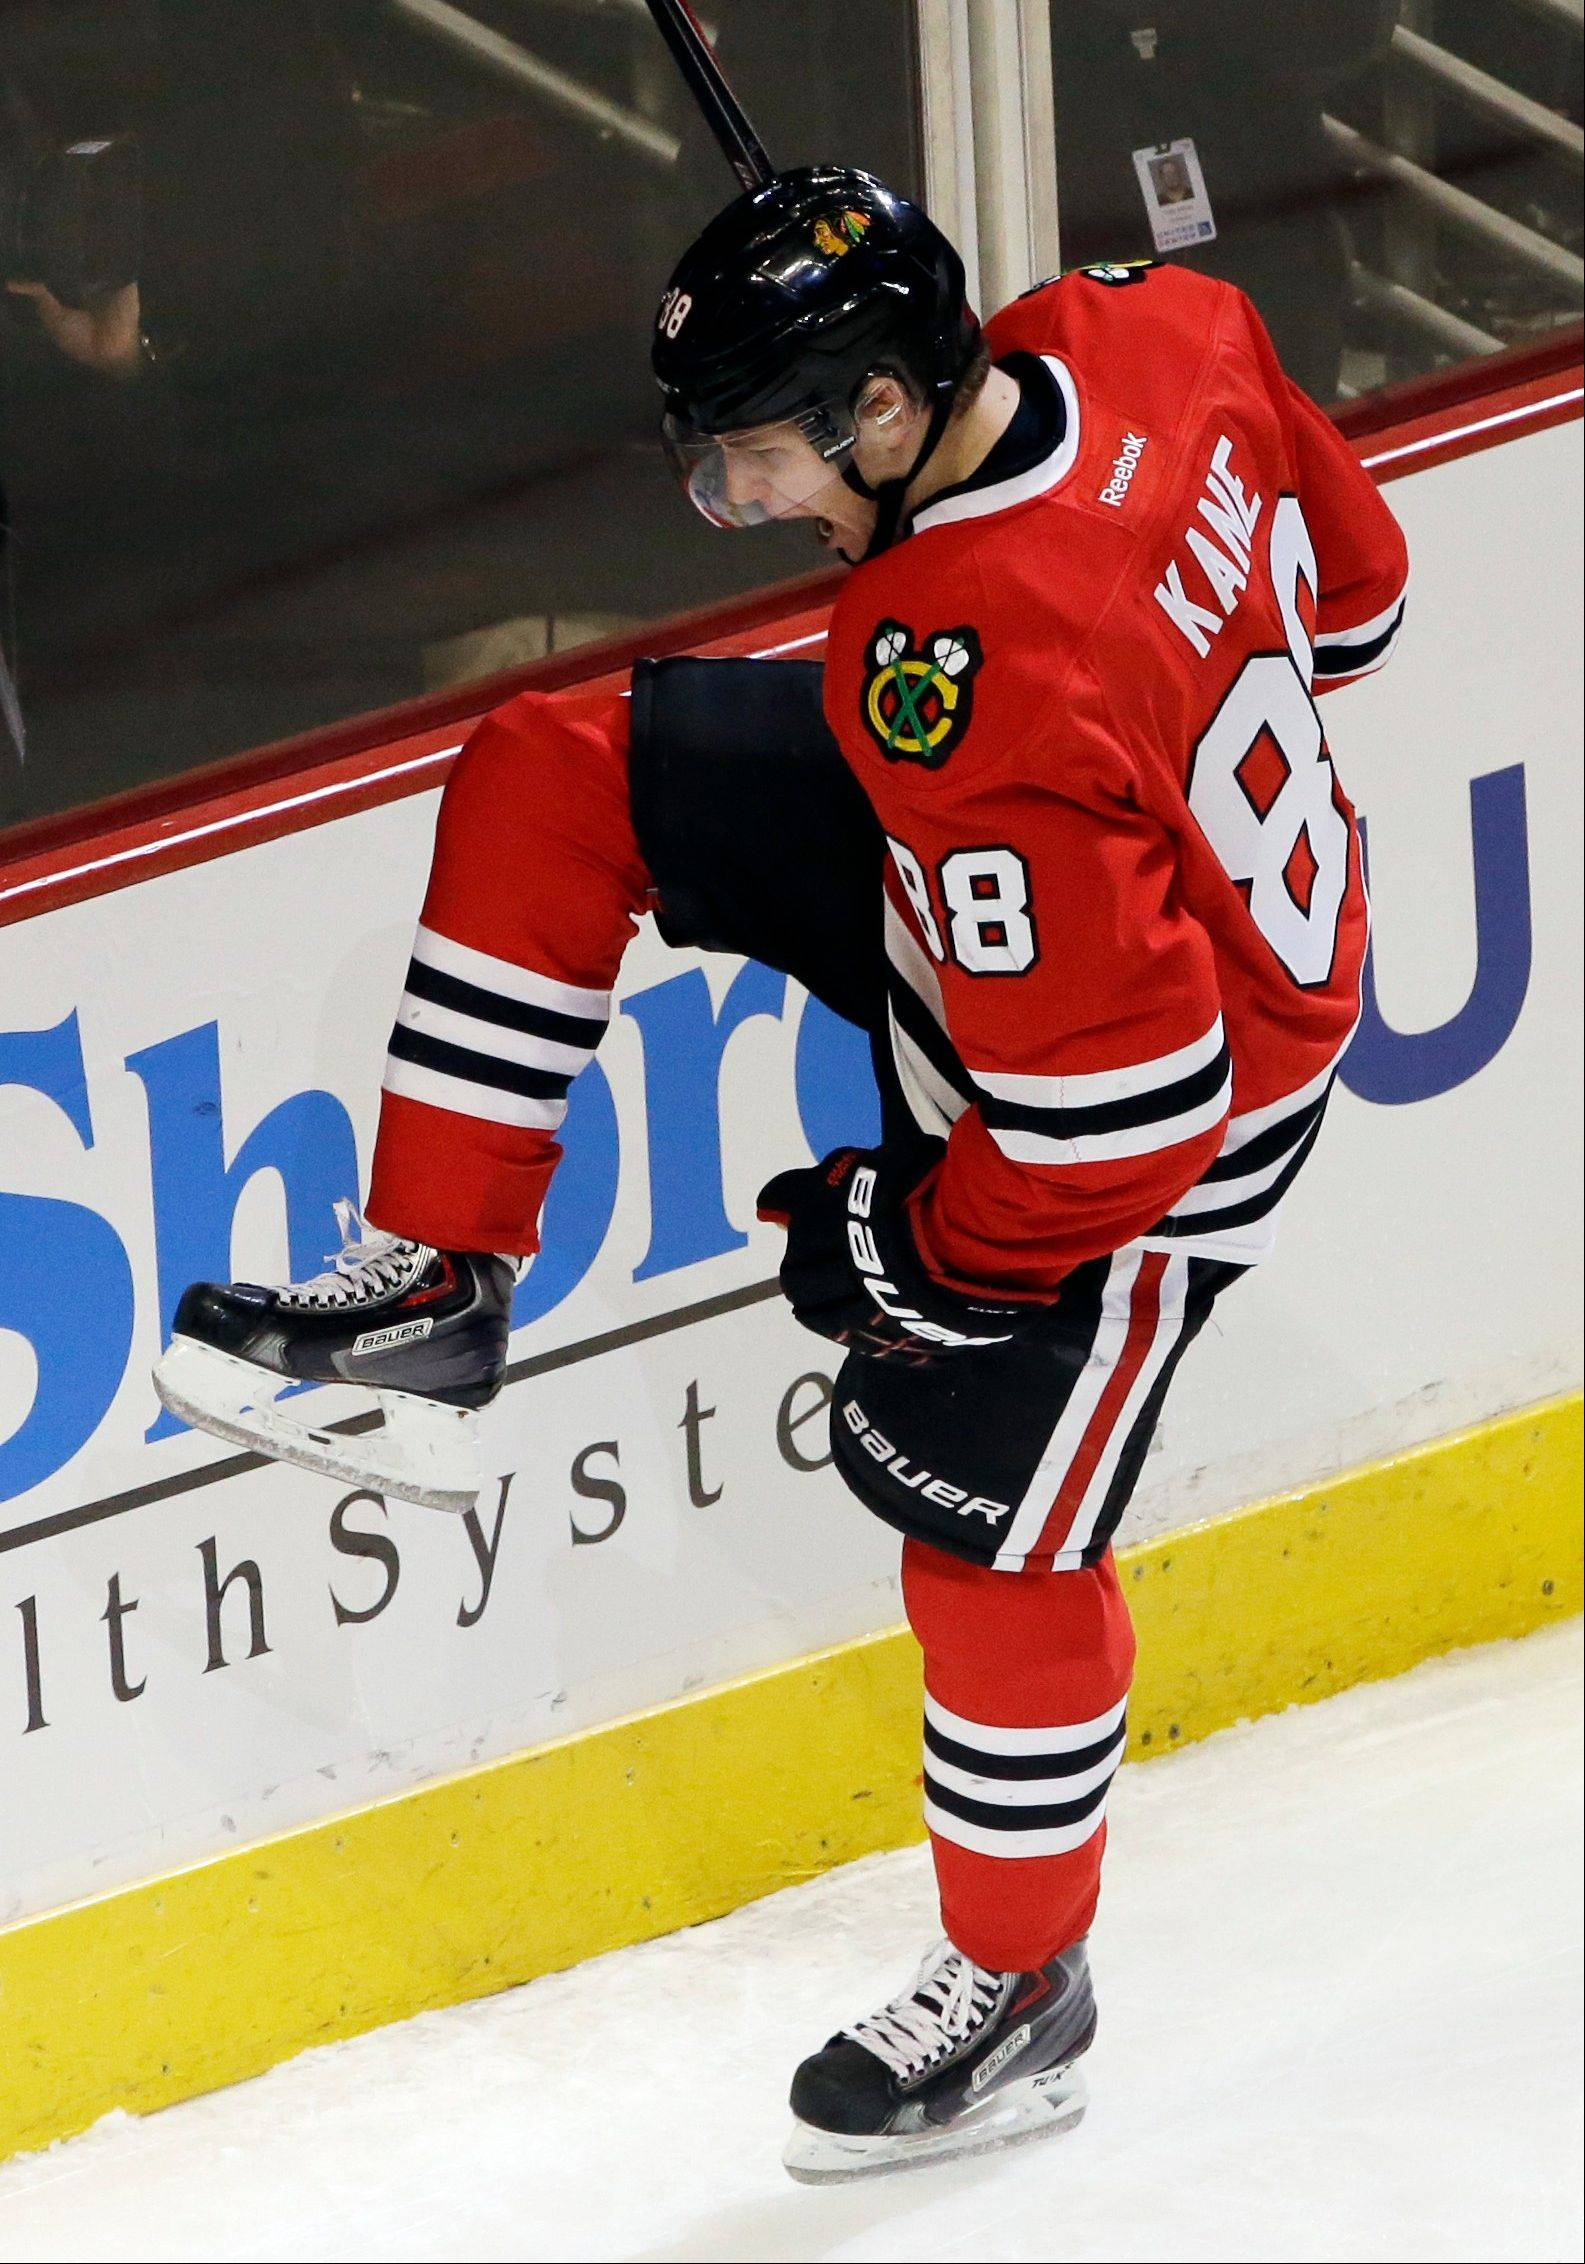 Hawks winger Patrick Kane isn't celebrating his minus-9 rating on the ice.